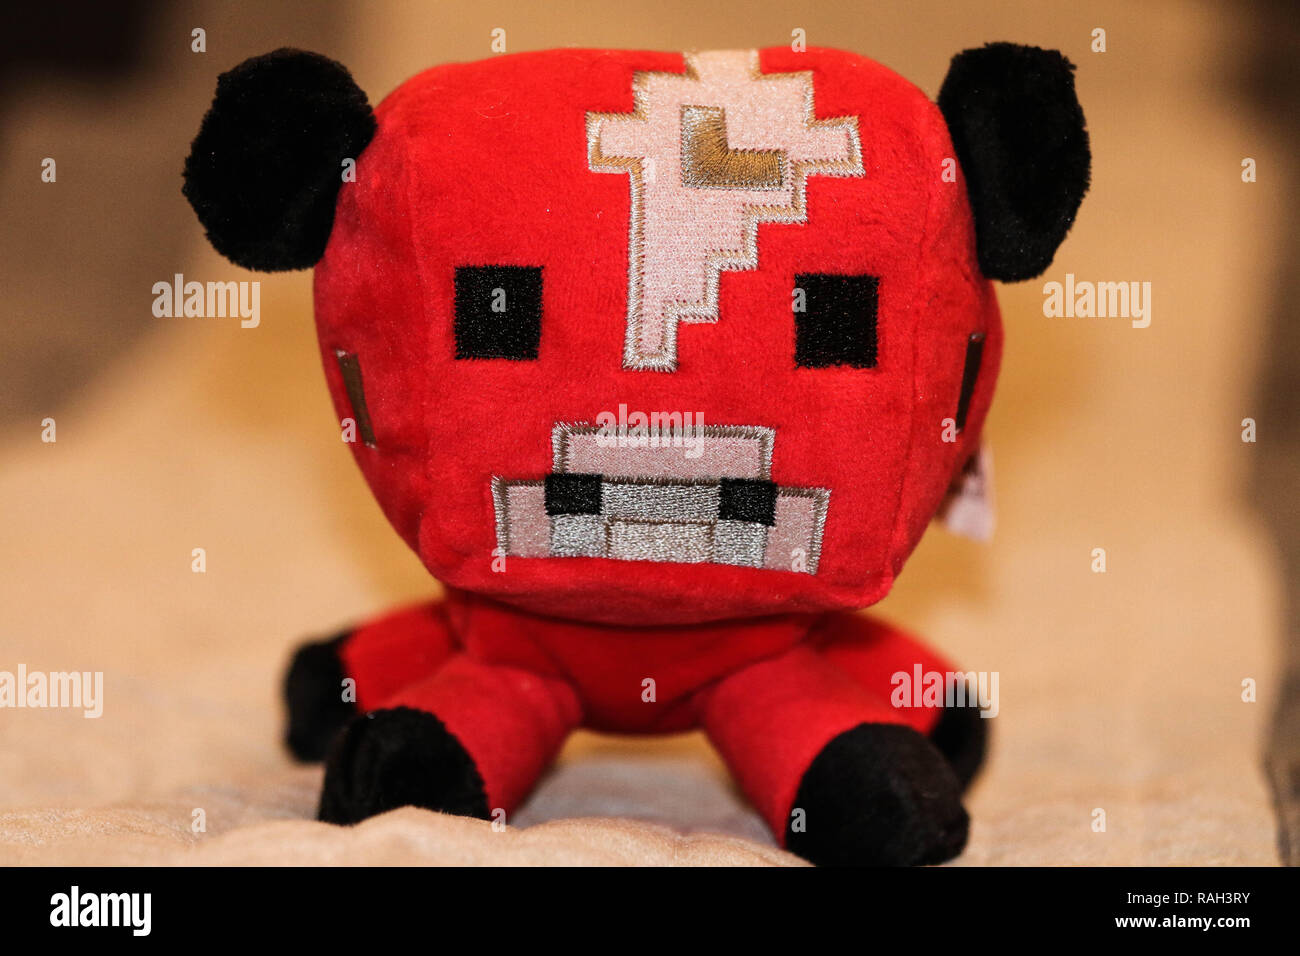 Minecraft red cow plush - Stock Image